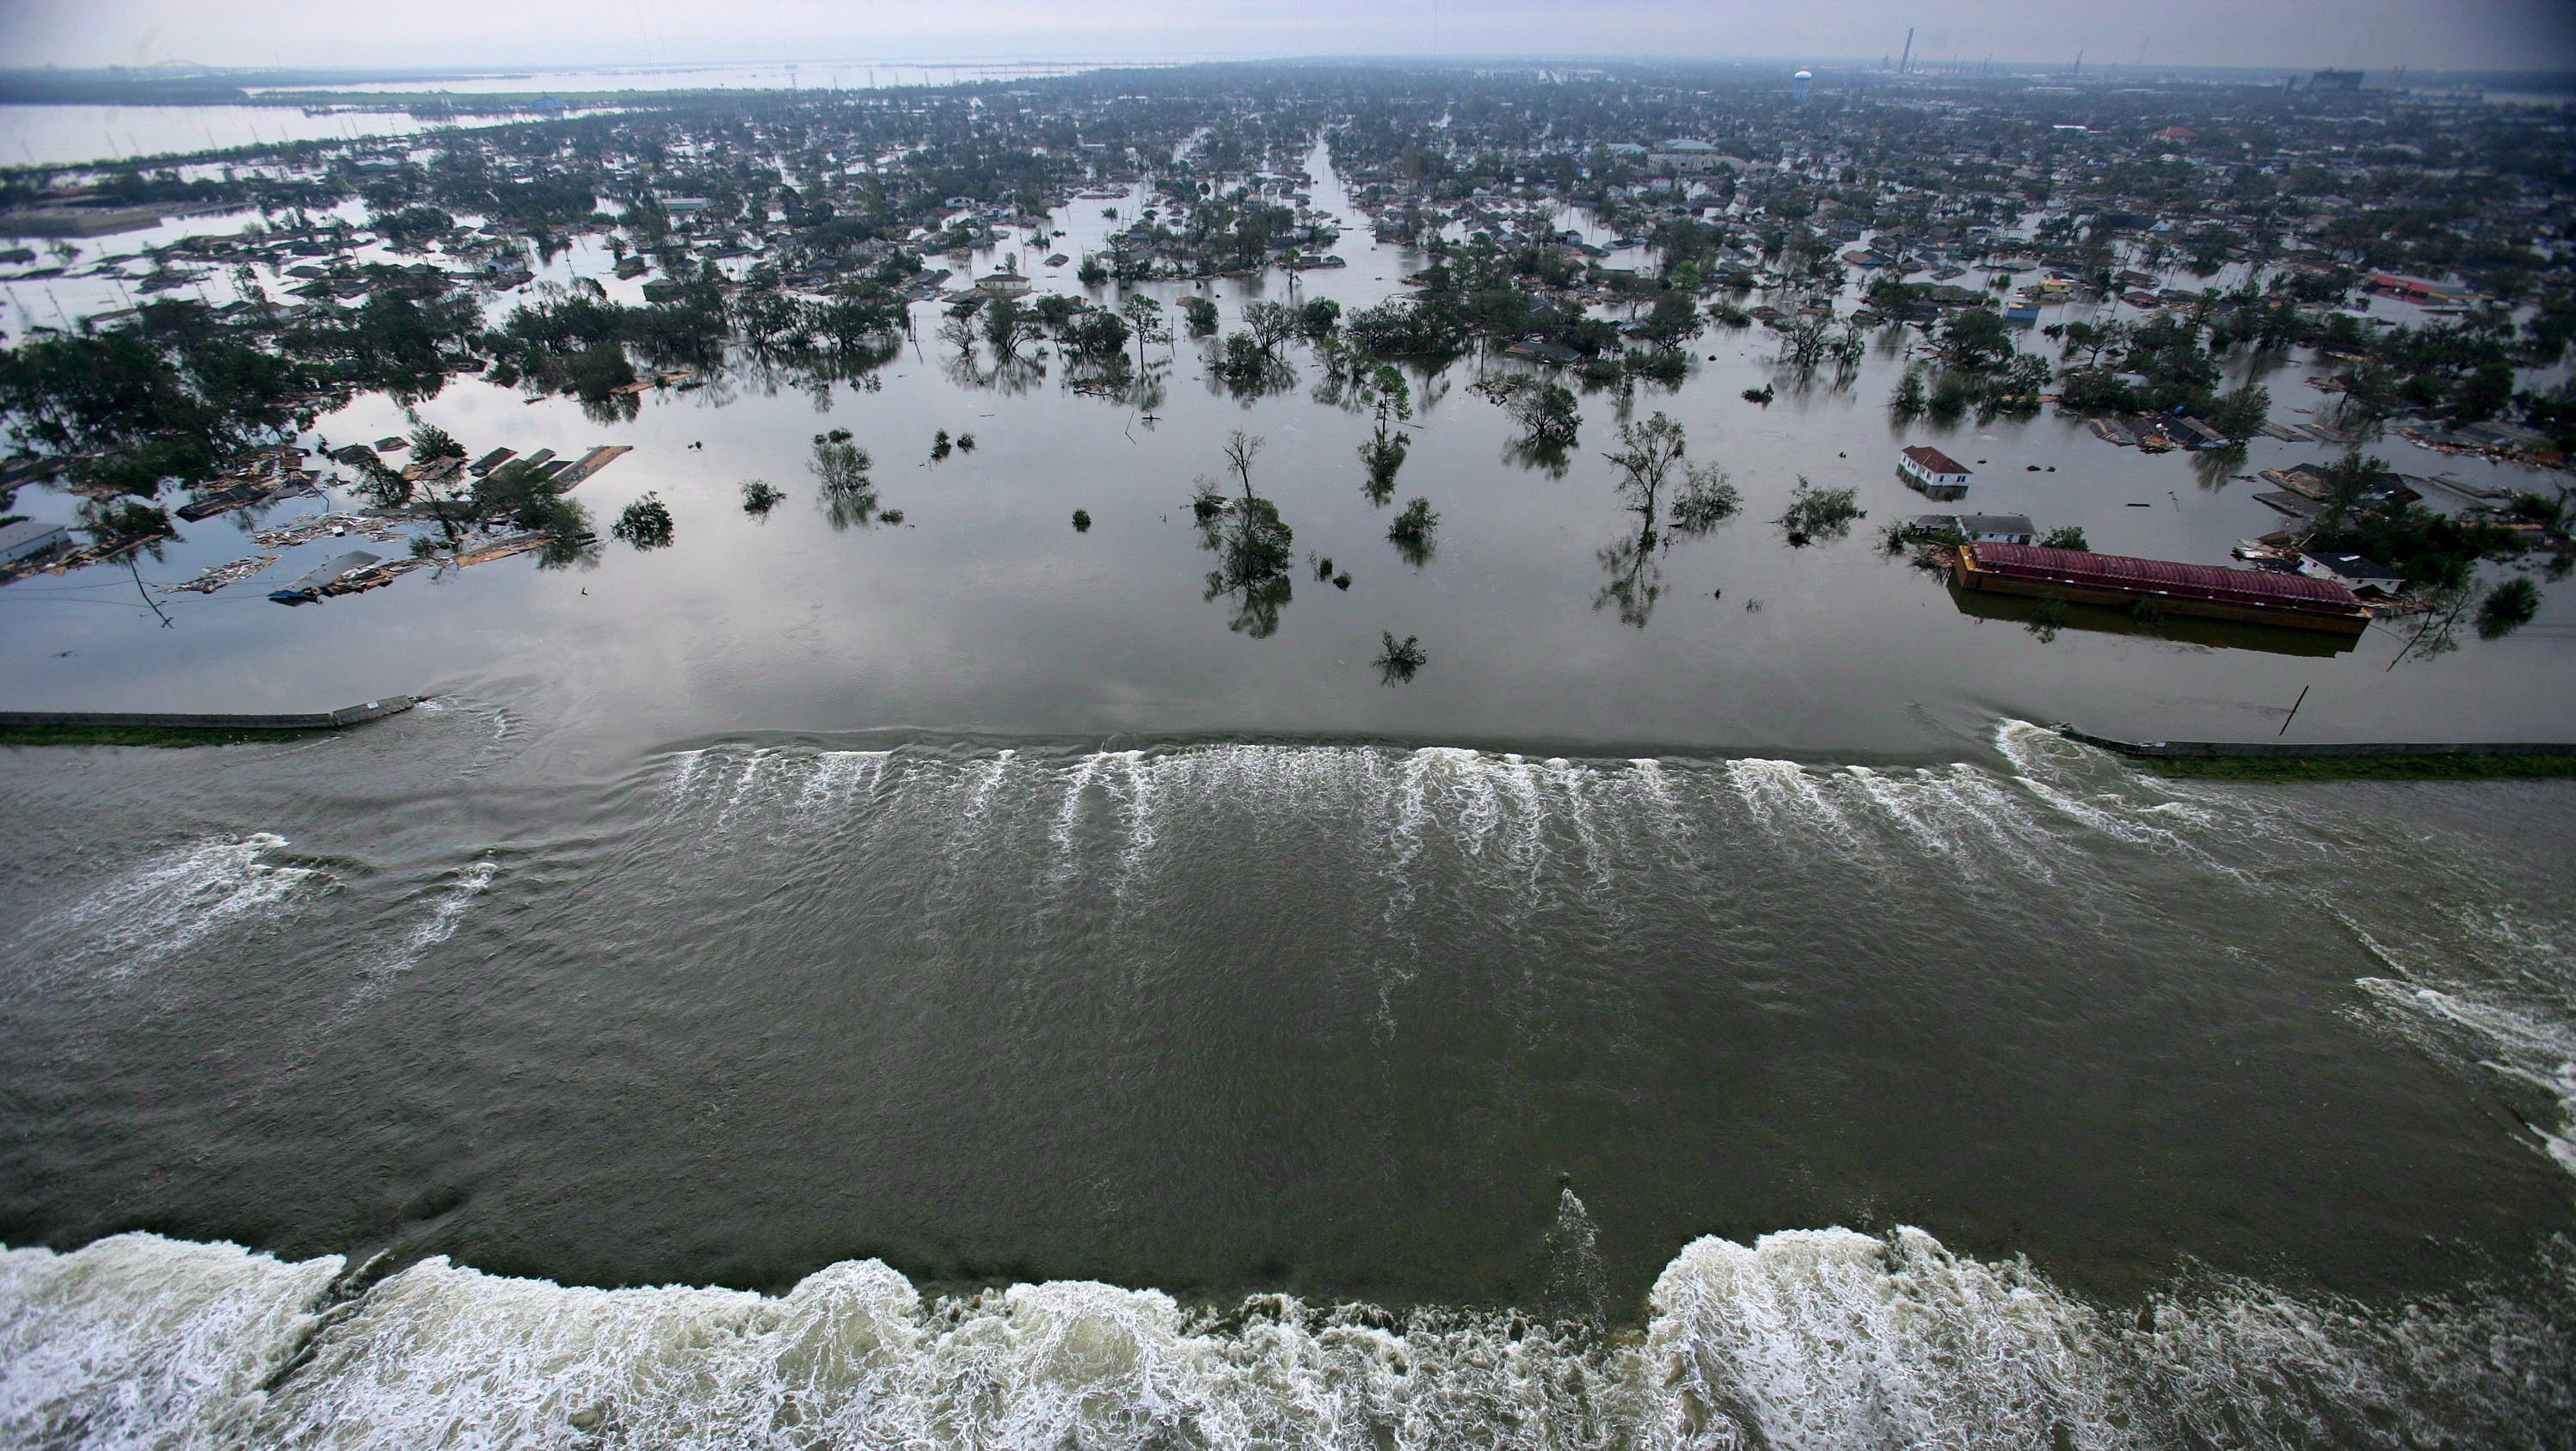 Ten Years After Katrina, Here's What's Happening to Louisiana's Coastline